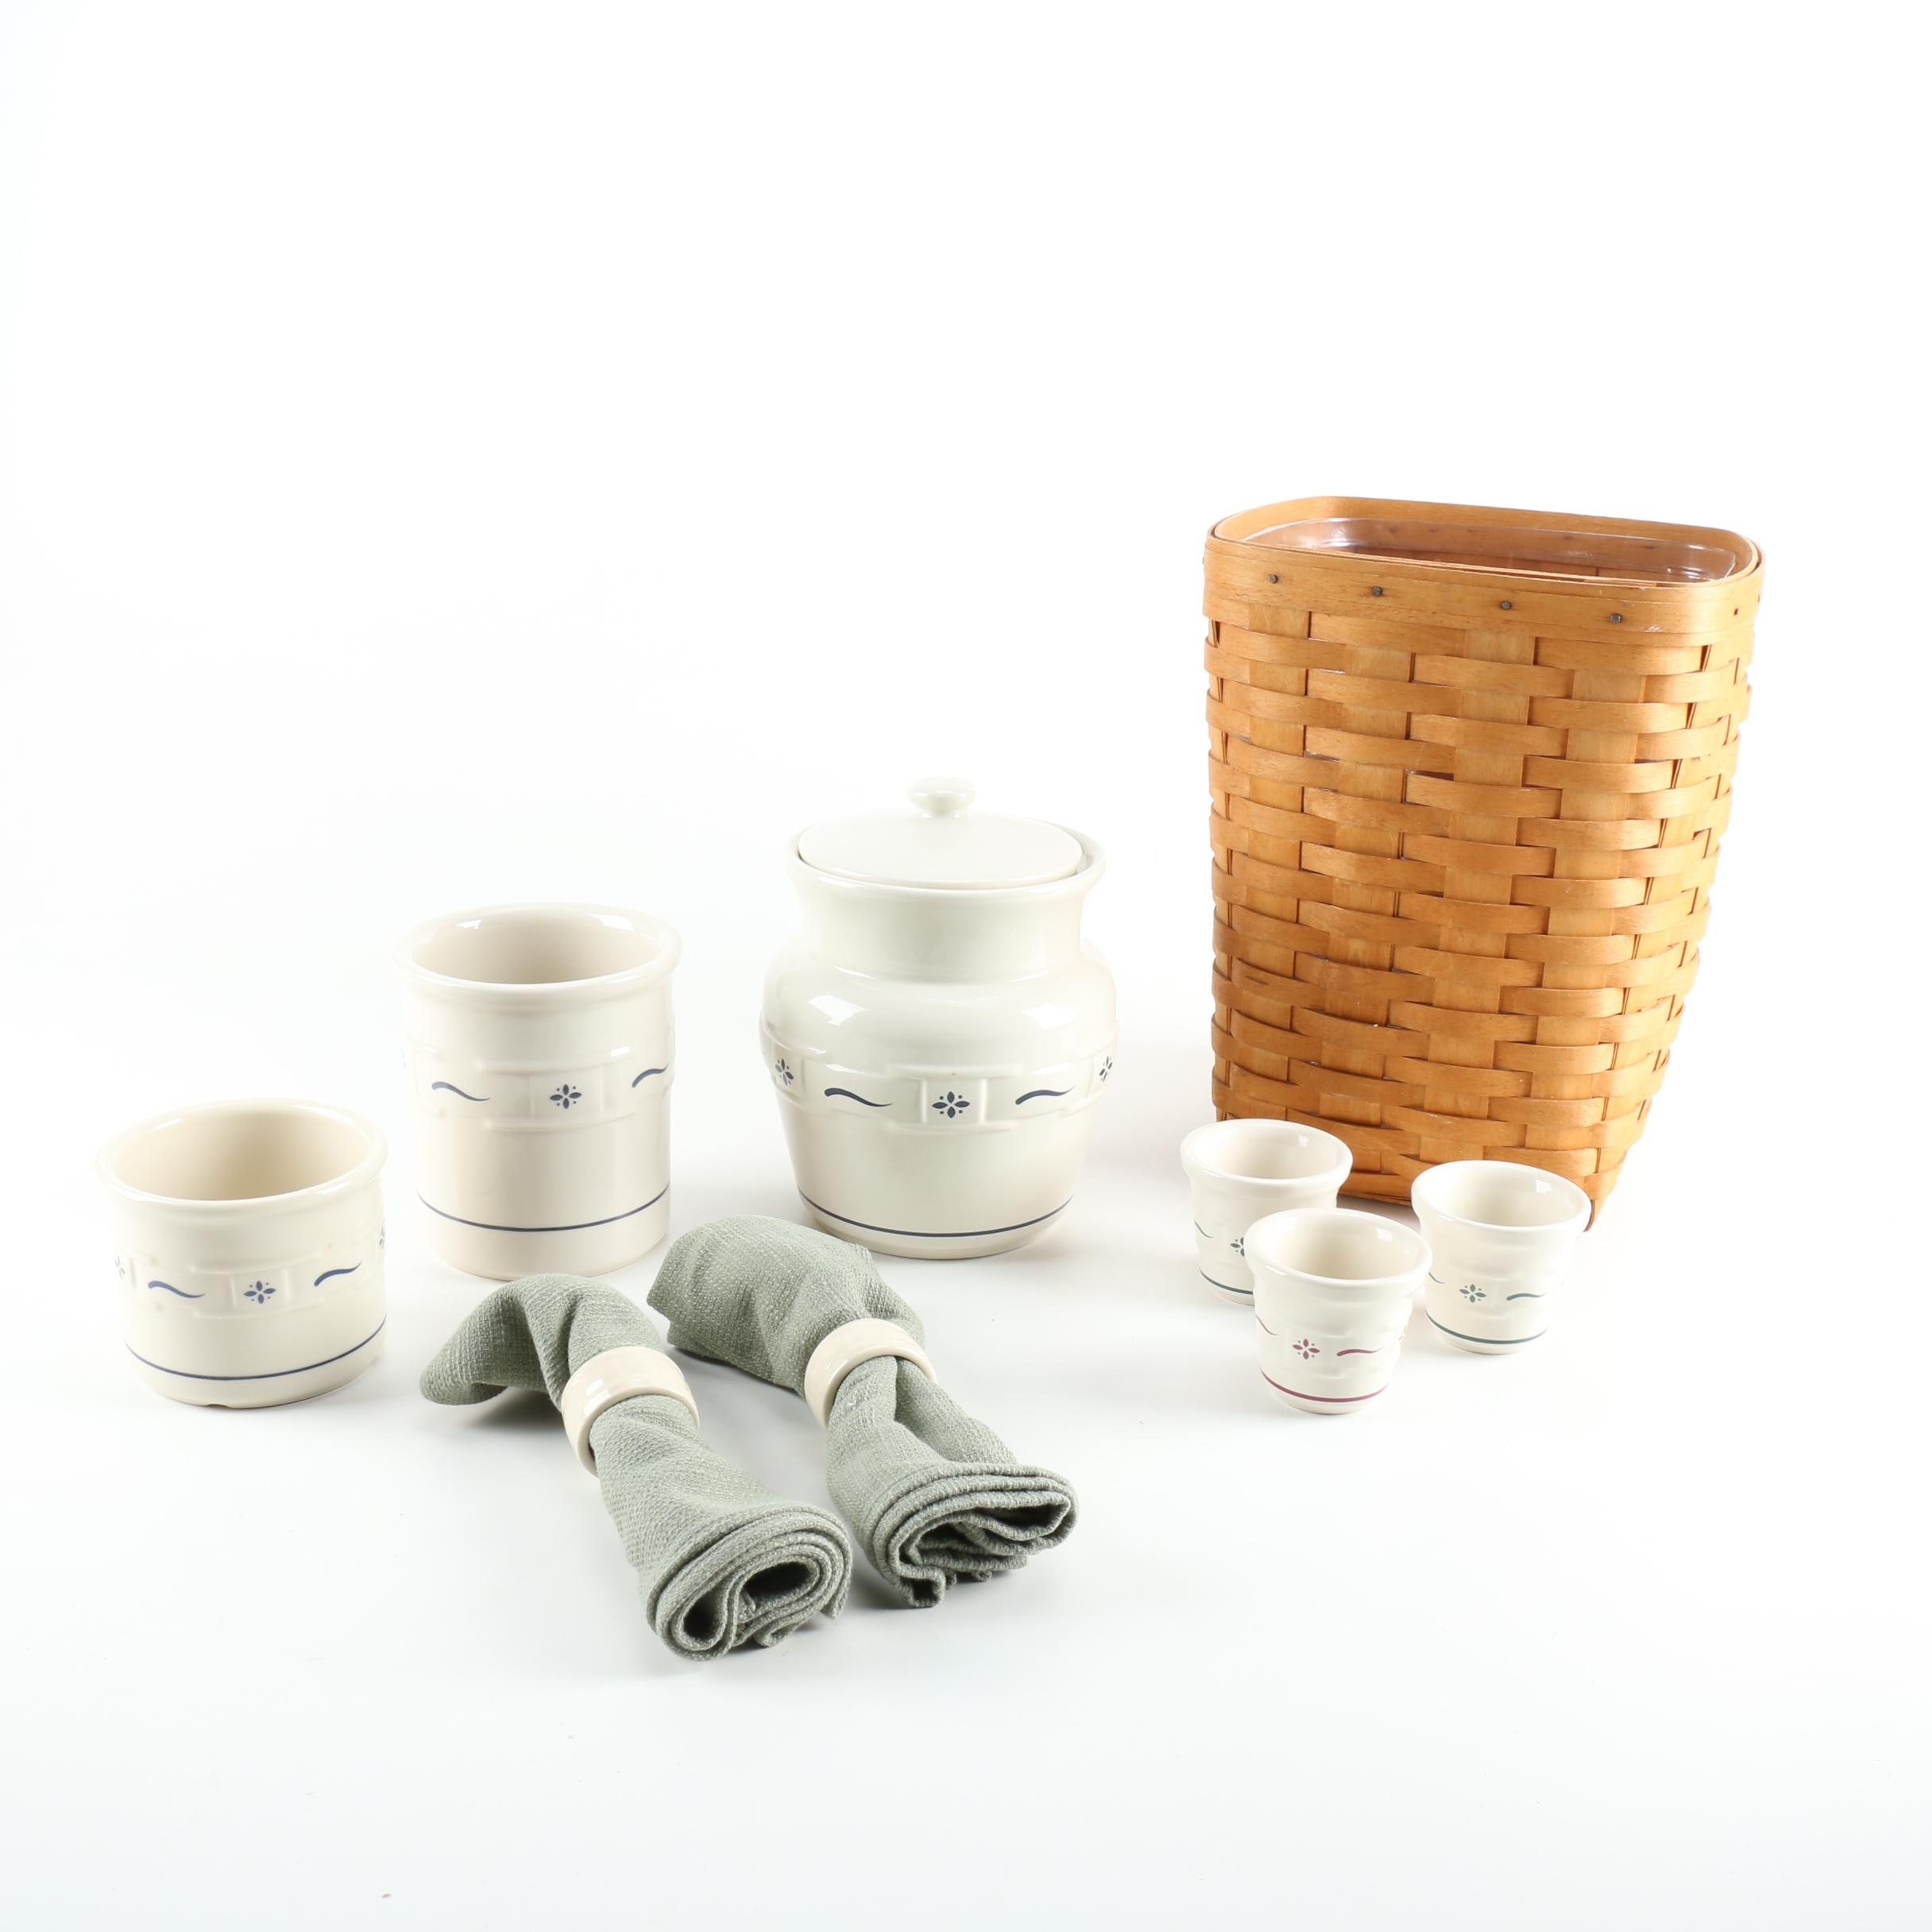 Longaberger Basket, Pottery and Accessories